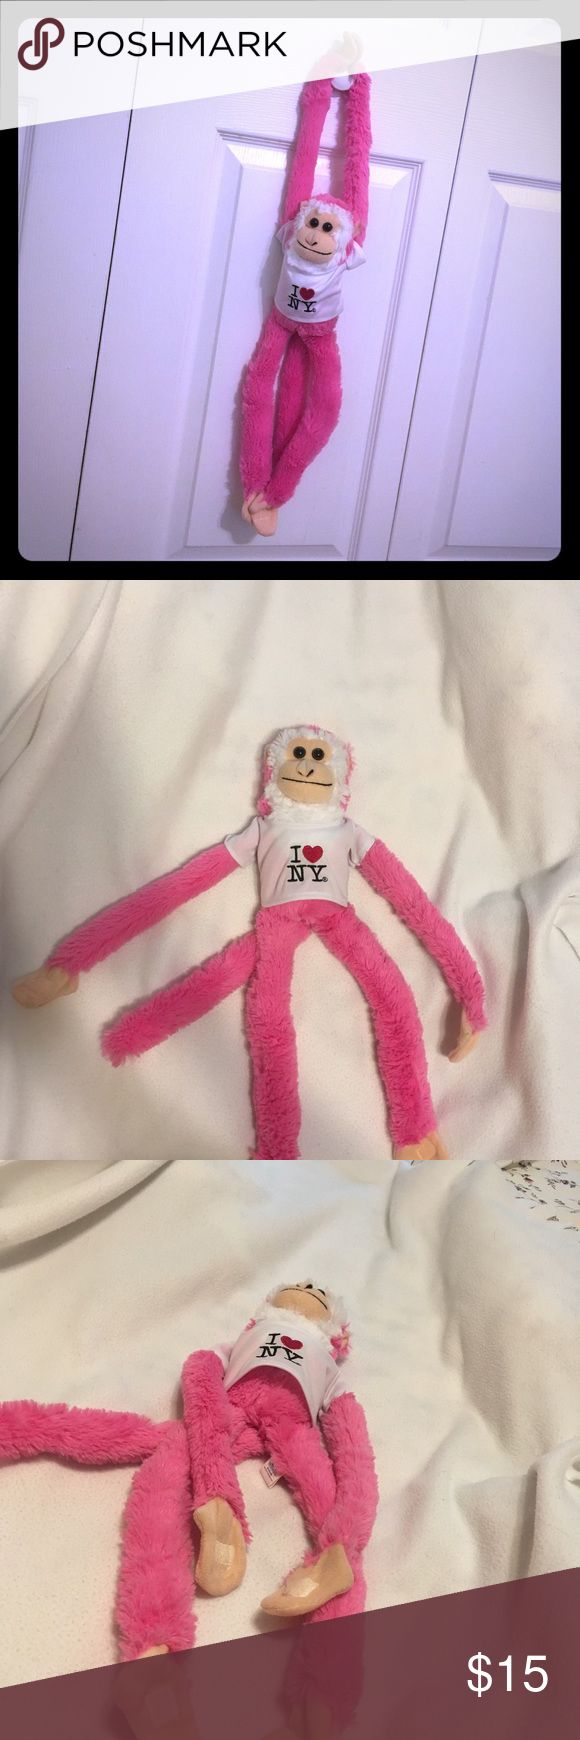 Bright Pink Monkey Will make a quite amusing sound once pressing monkey's belly! Bundle to save more🎉🎉 Disney Accessories